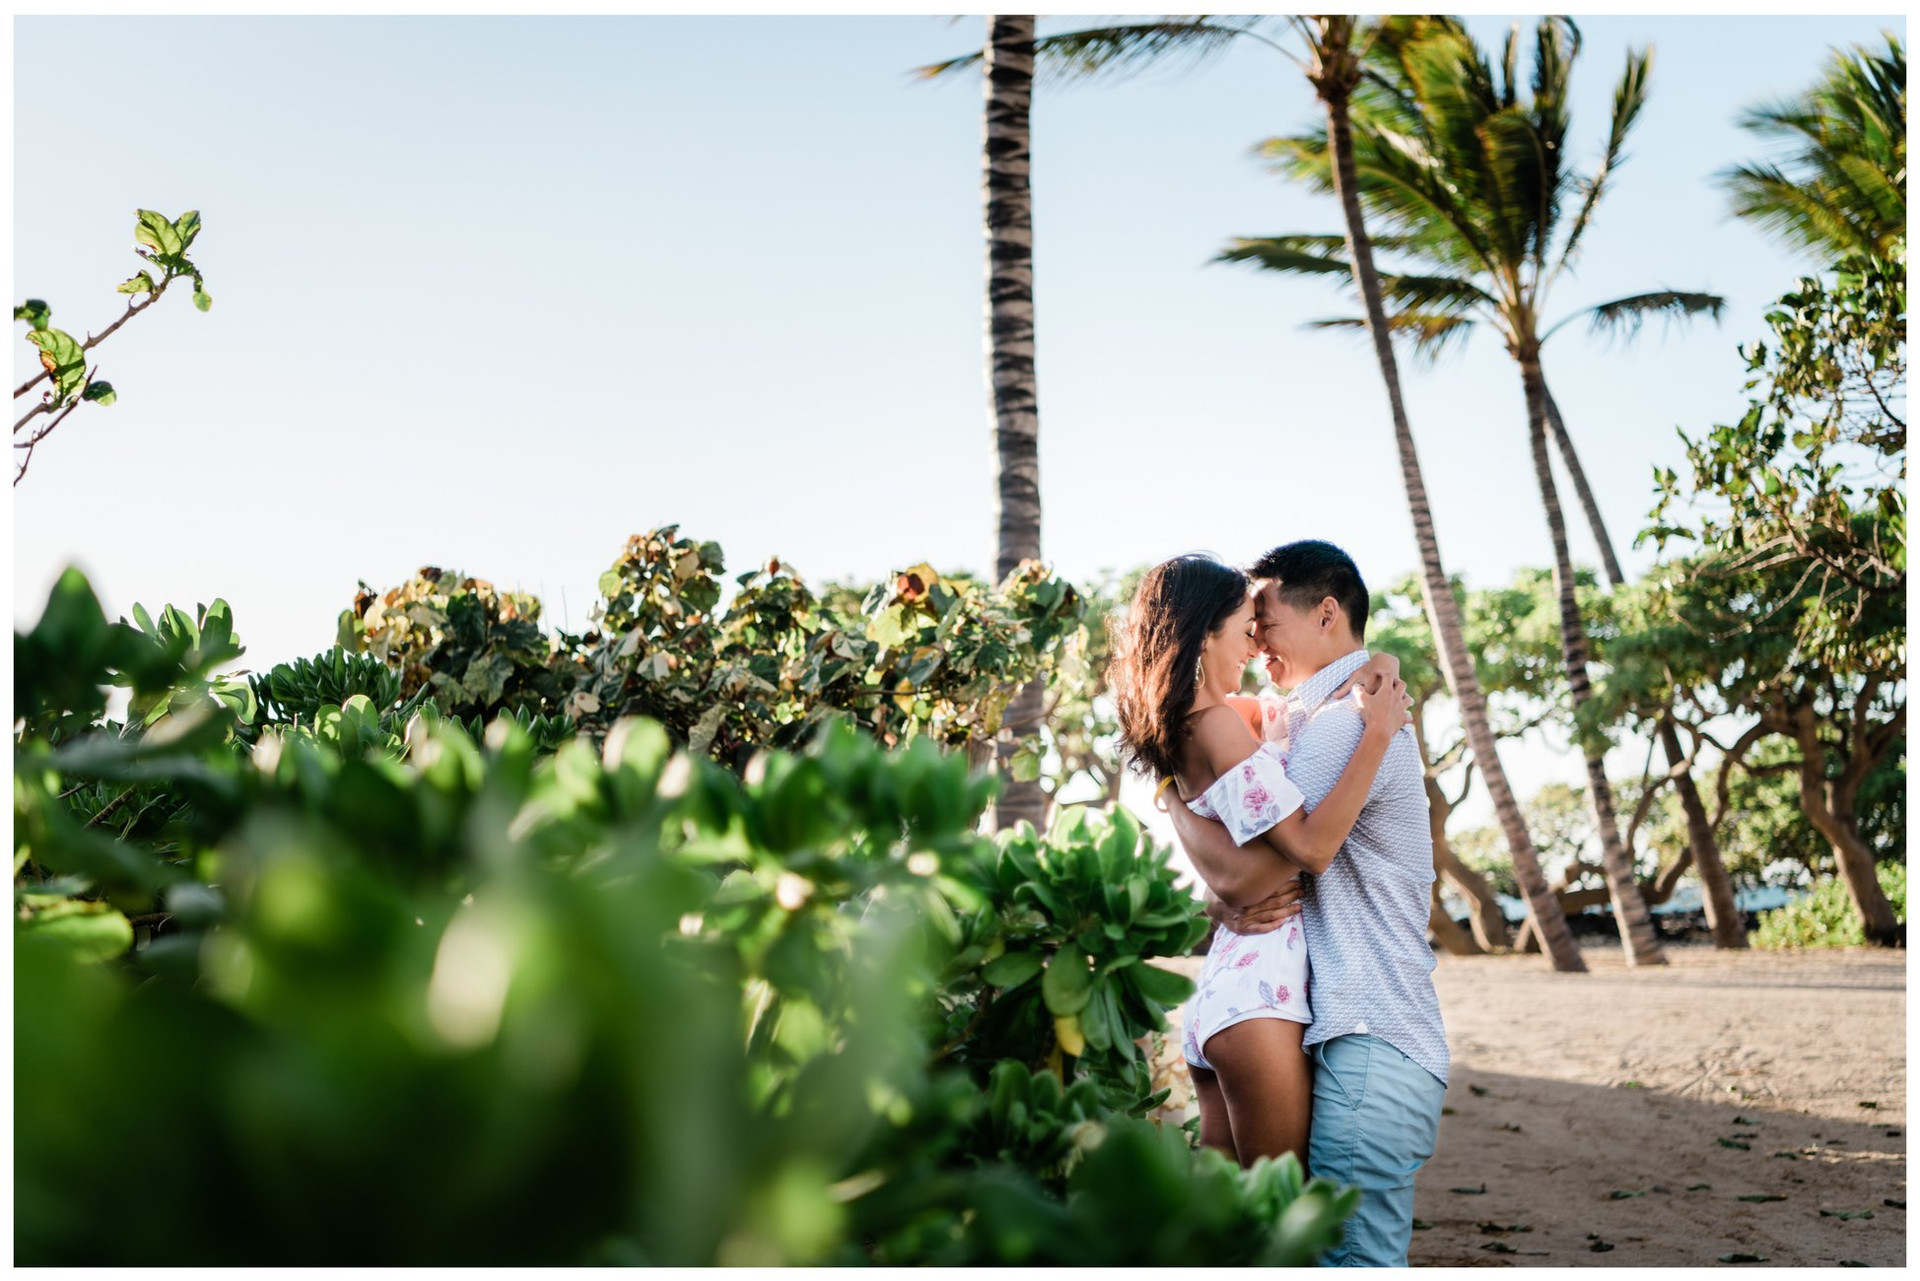 Hawaii Engagment Photography 6.jpg